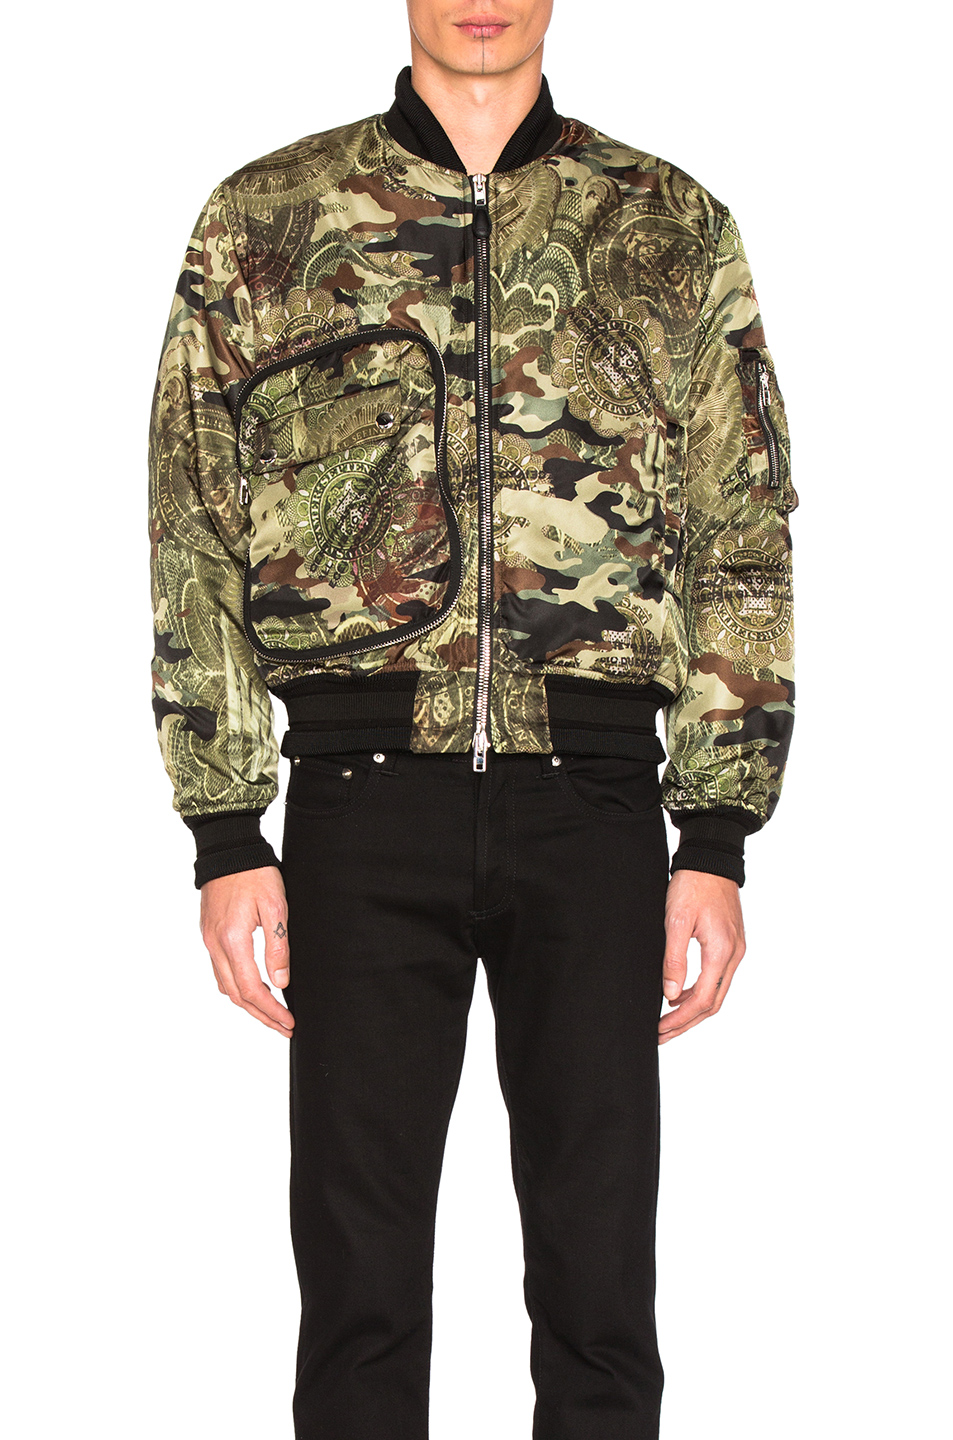 Givenchy Printed Bomber Jacket in Green,Abstract